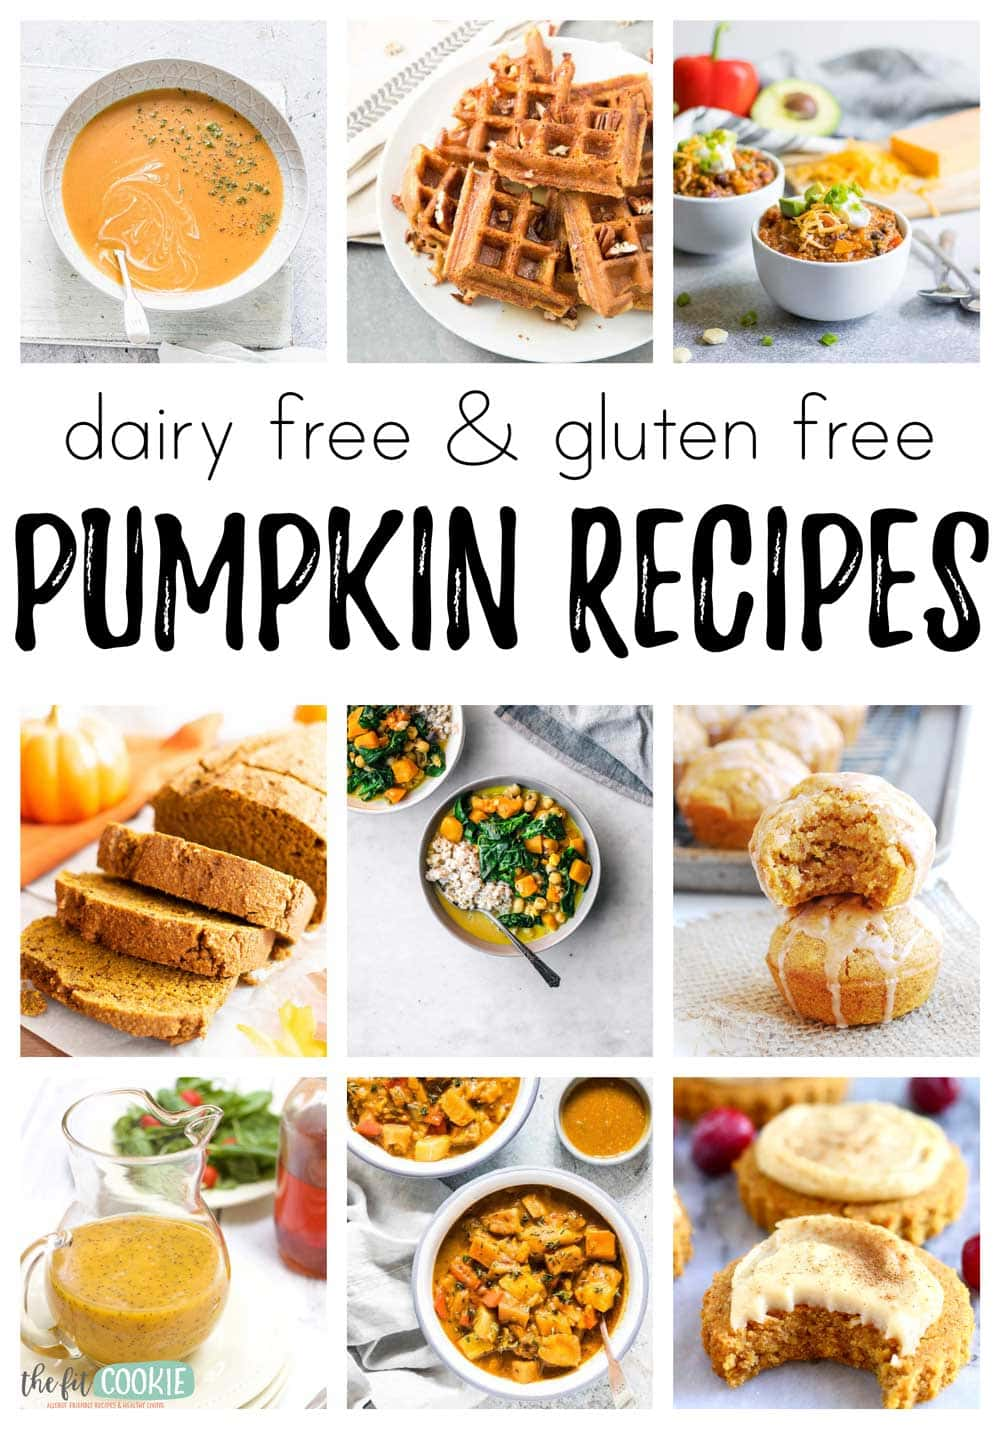 photo collage of various dairy free pumpkin recipes